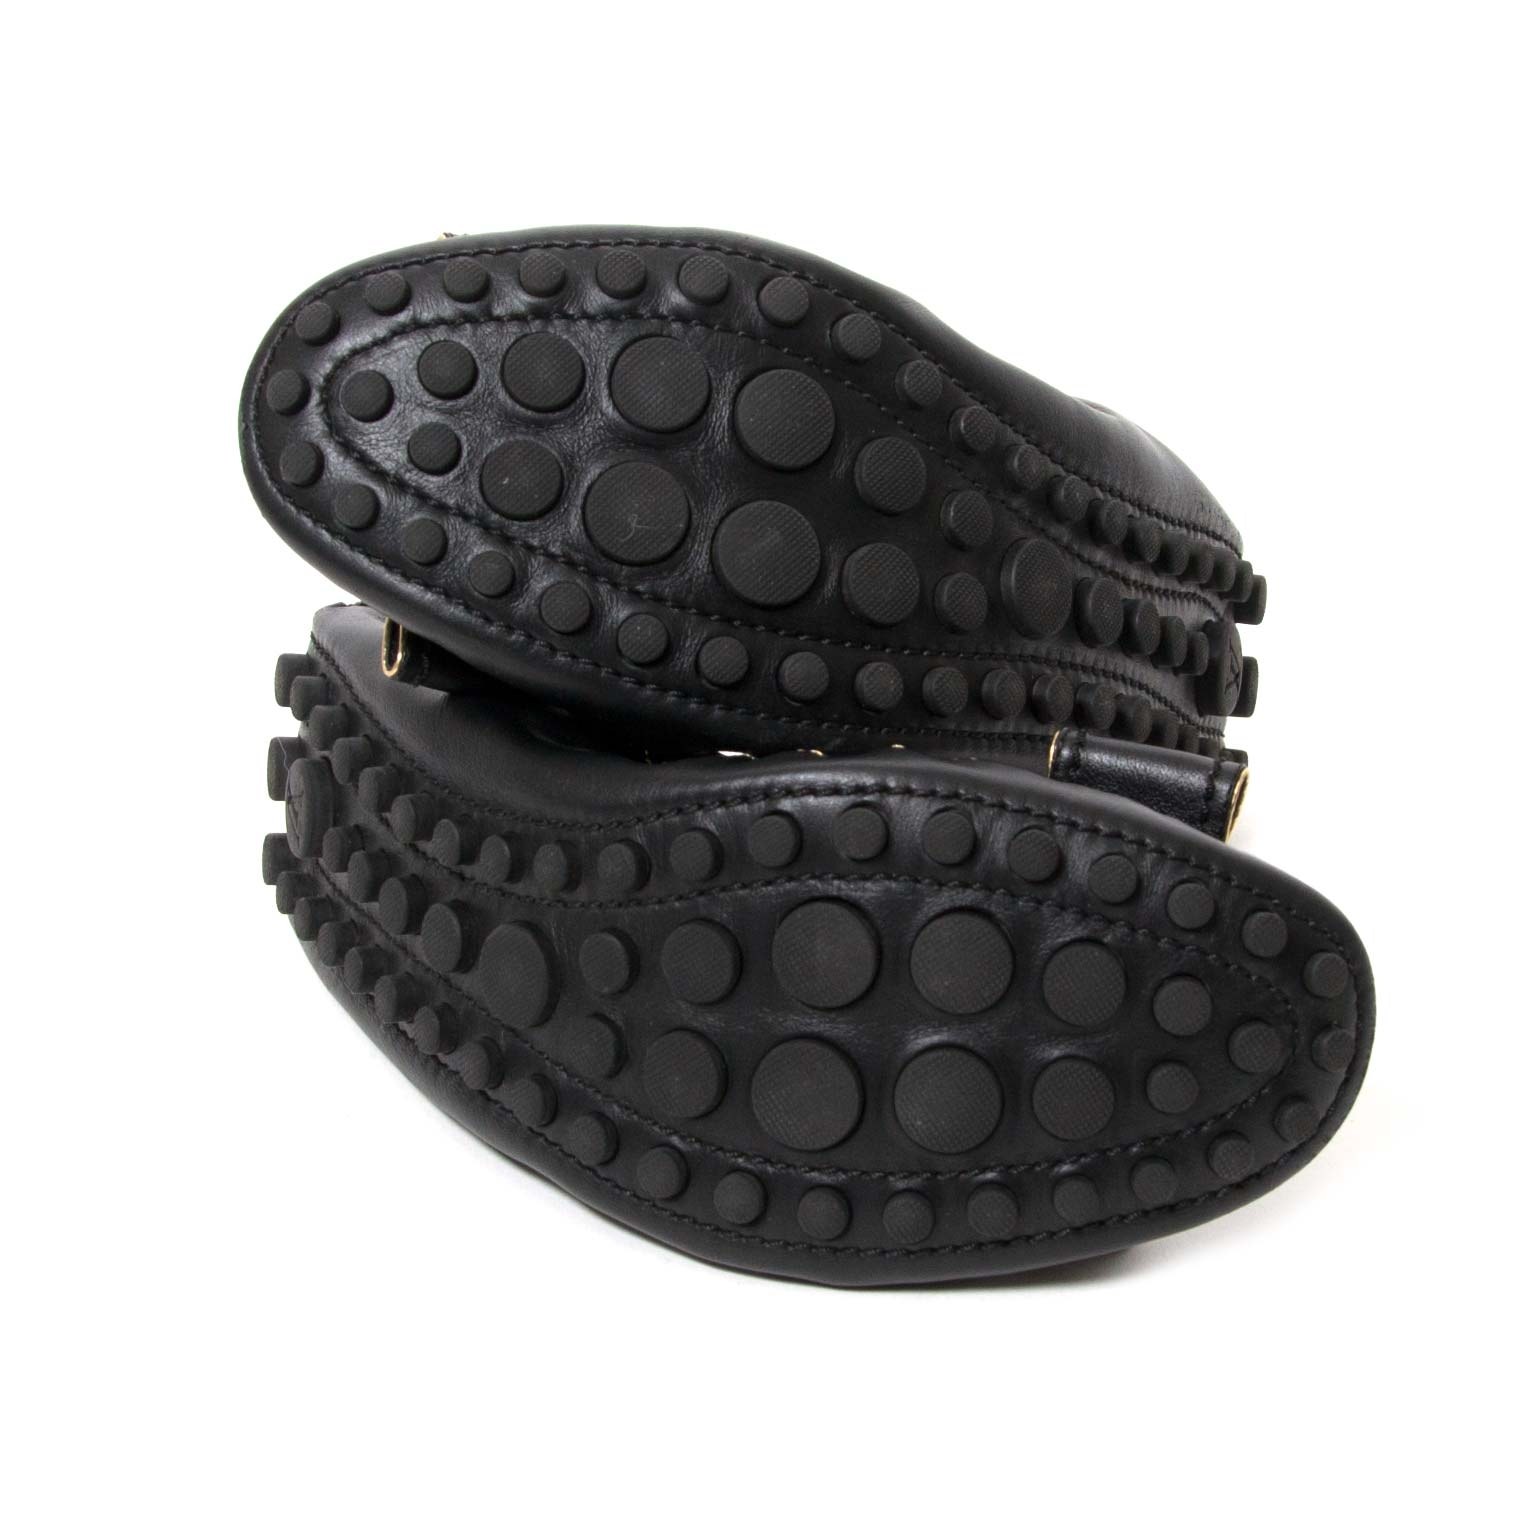 buy Louis Vuitton Black Leather Bow Flats - Size 38,5 at labellov for the best price